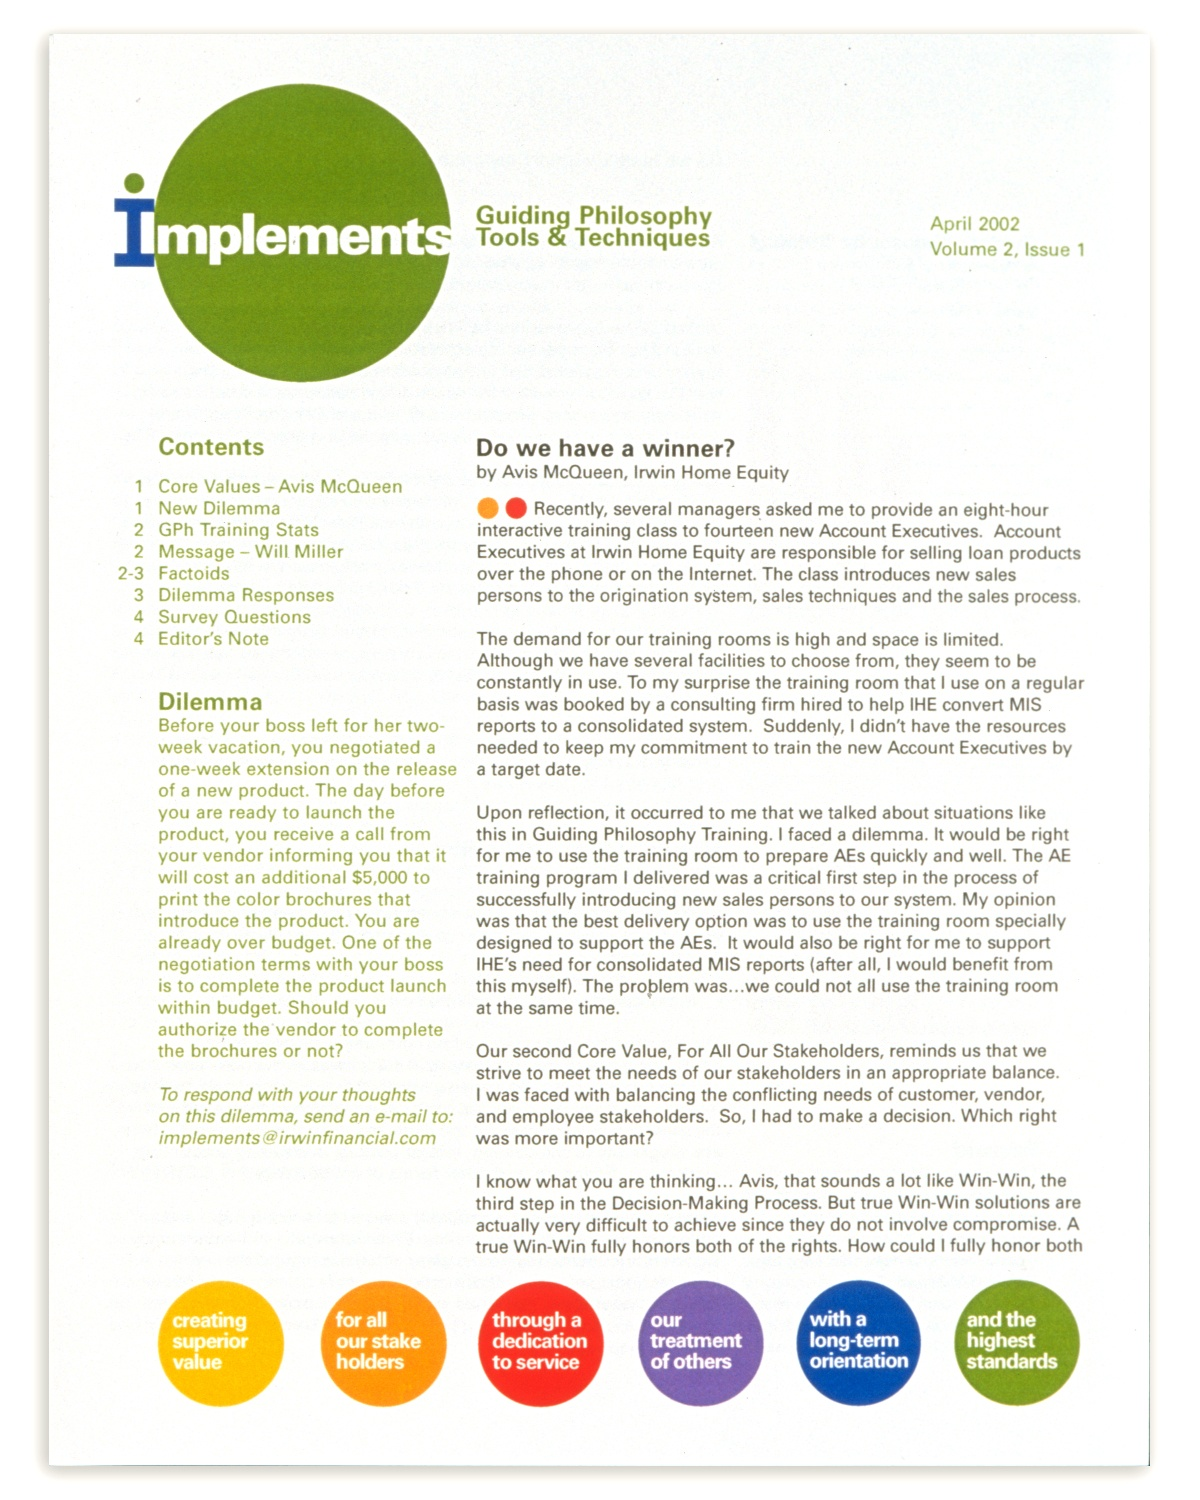 Project image 3 for Printed Materials & Annual Reports, Irwin Financial Corp.